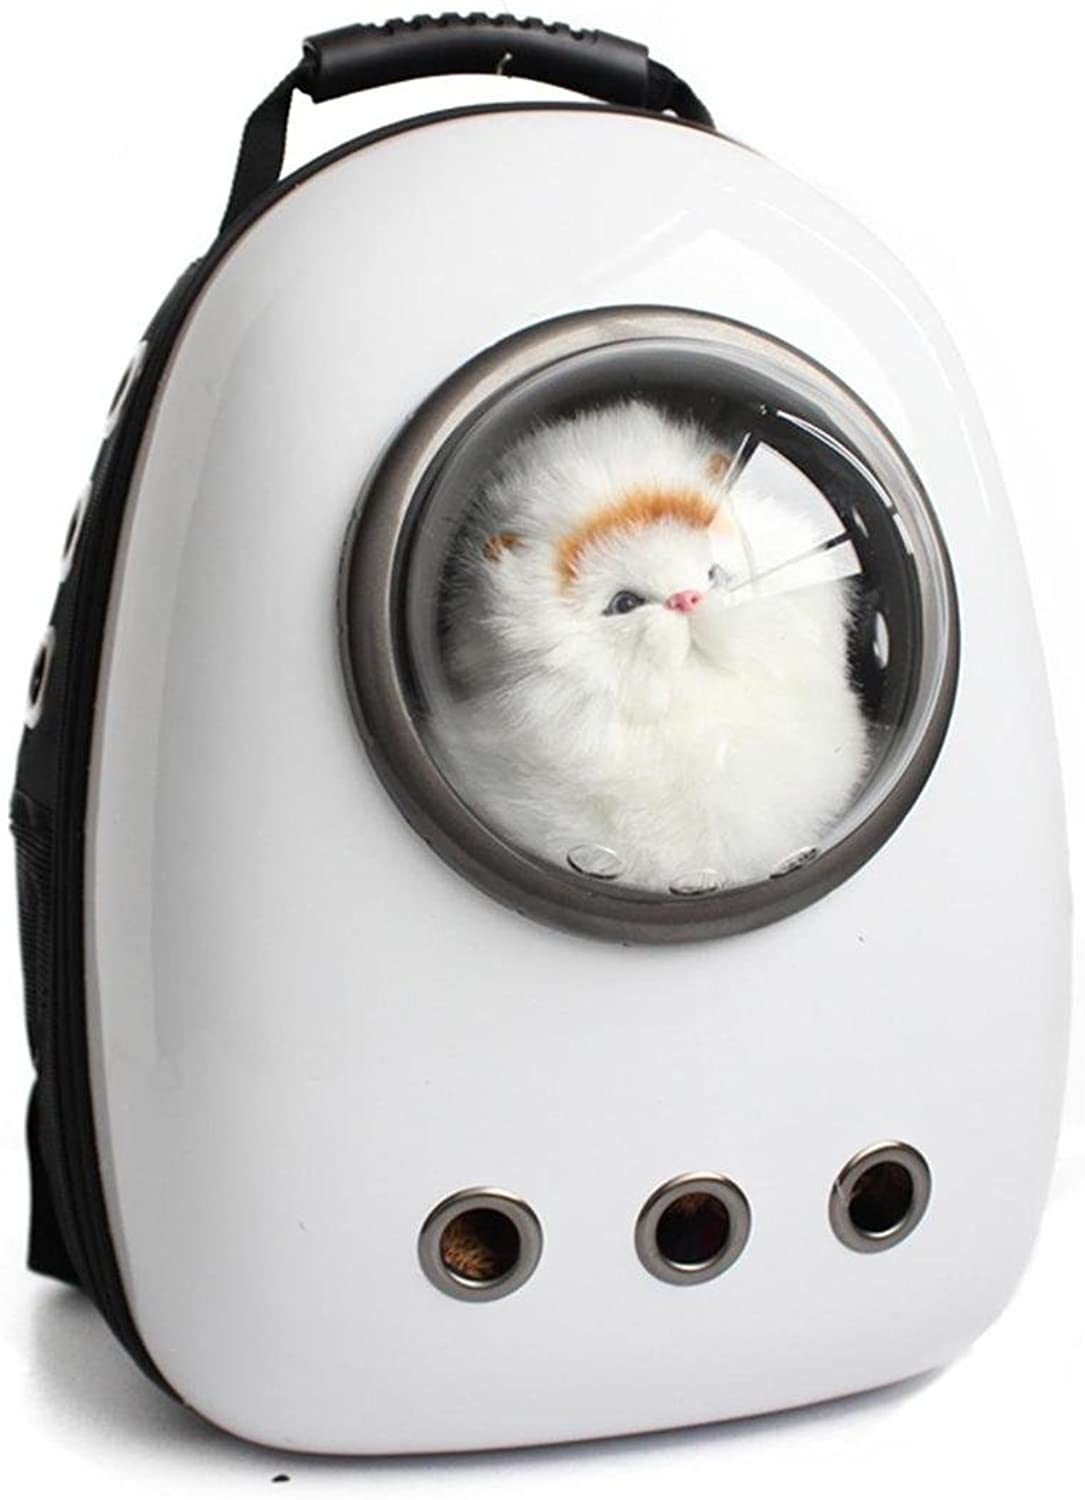 Astronaut Capsule Pet Backpack Airline Approved Transparent Breathable Venthole Dog Cat Carrier Portable Handbag Outdoor Travel Walking Hiking Suitcase 4 color , whitethreehole